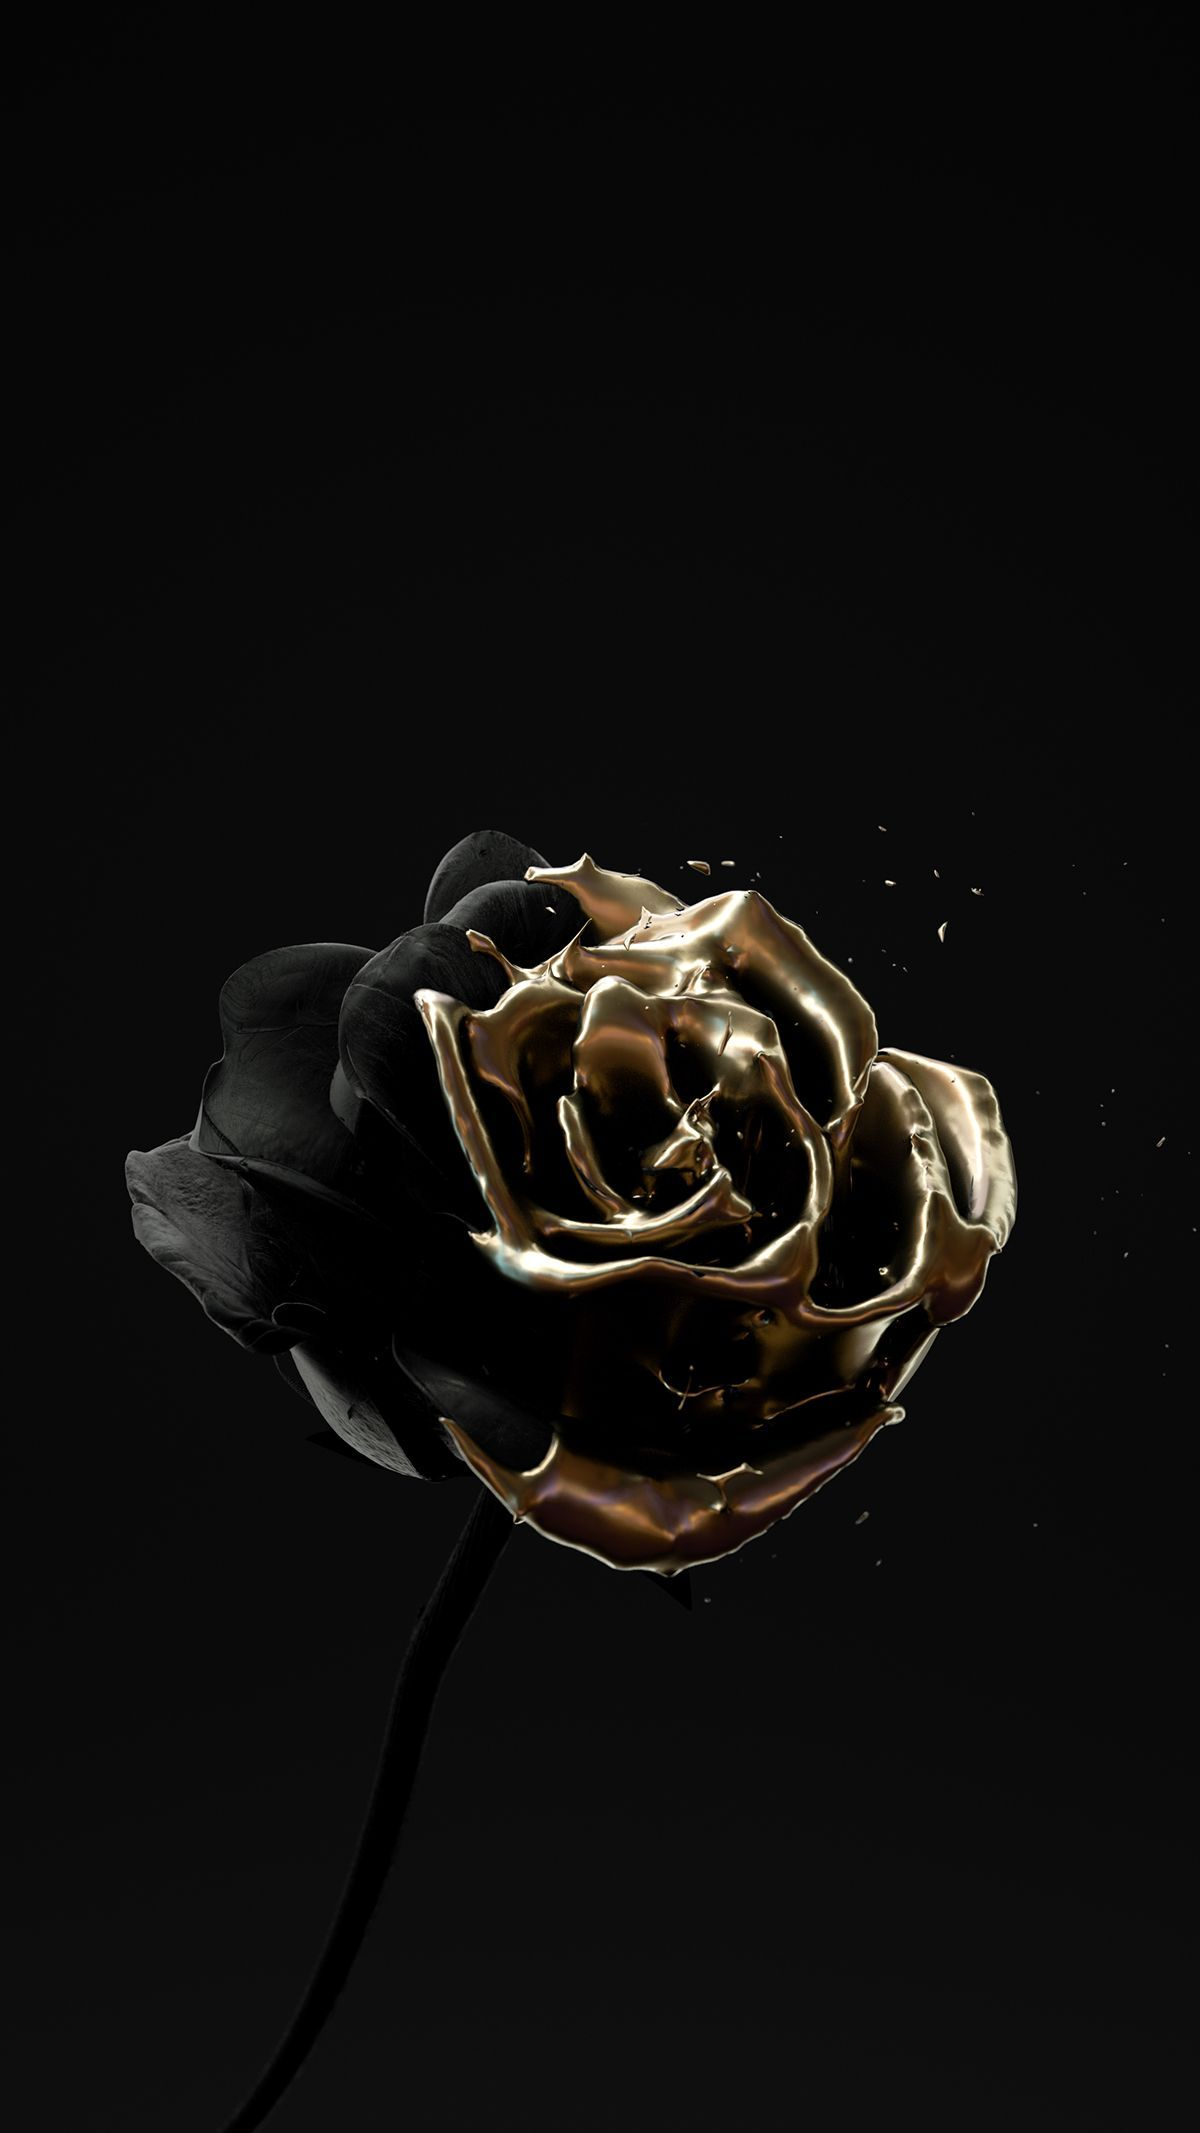 Roses Are Dead Vol 4 Black And Gold In 2020 Black And Gold Aesthetic Gold Aesthetic Gold And Black Wallpaper